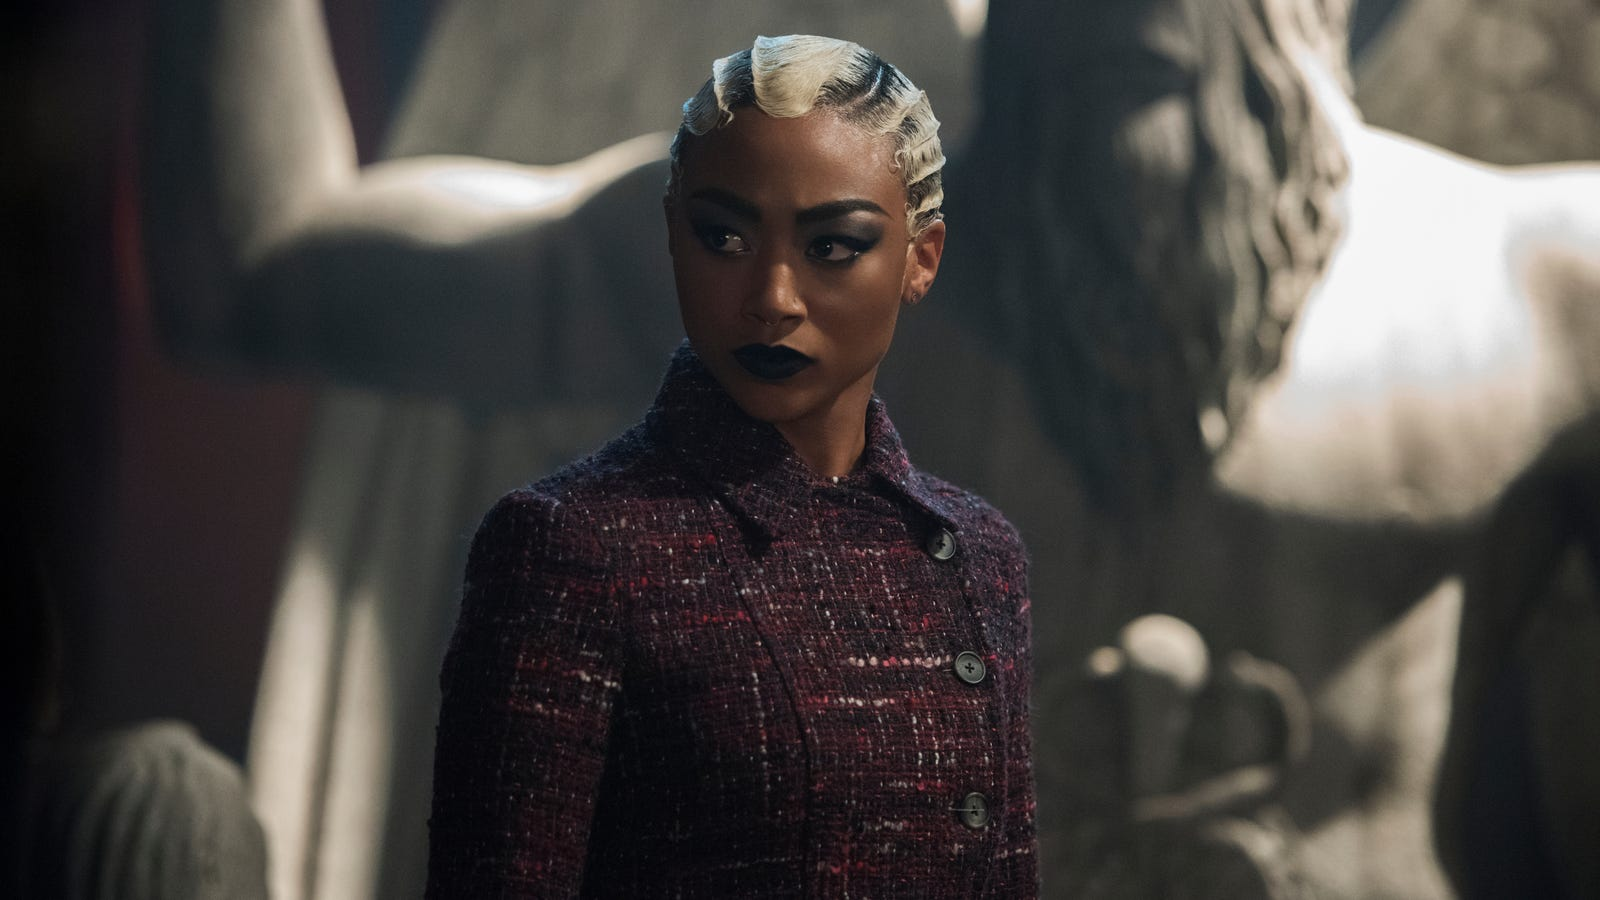 The Chilling Adventures Of Sabrina S Has Major Race Issues